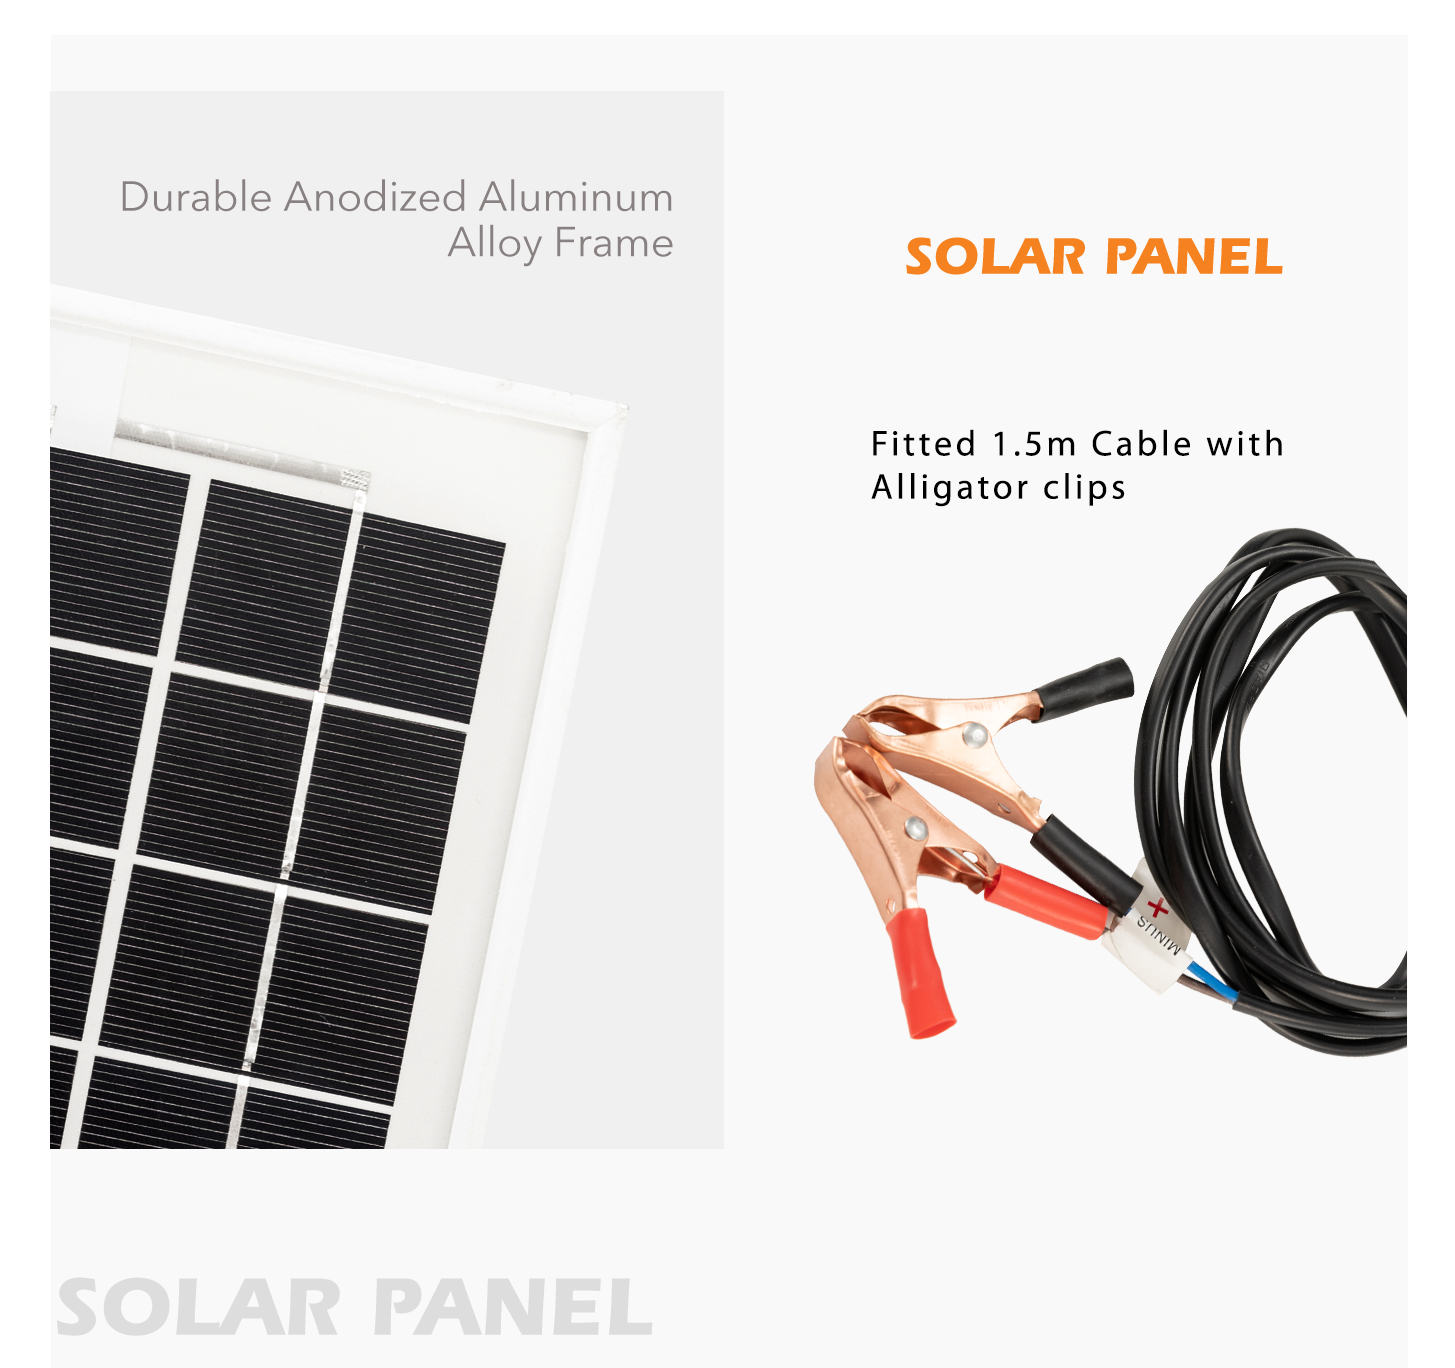 2x 12v 10w Solar Panel Kit Megavolt Caravan Camping Power Mono Wiring Diagram Item Description Absorbs Maximum Sunlight With Latest Cell Technology